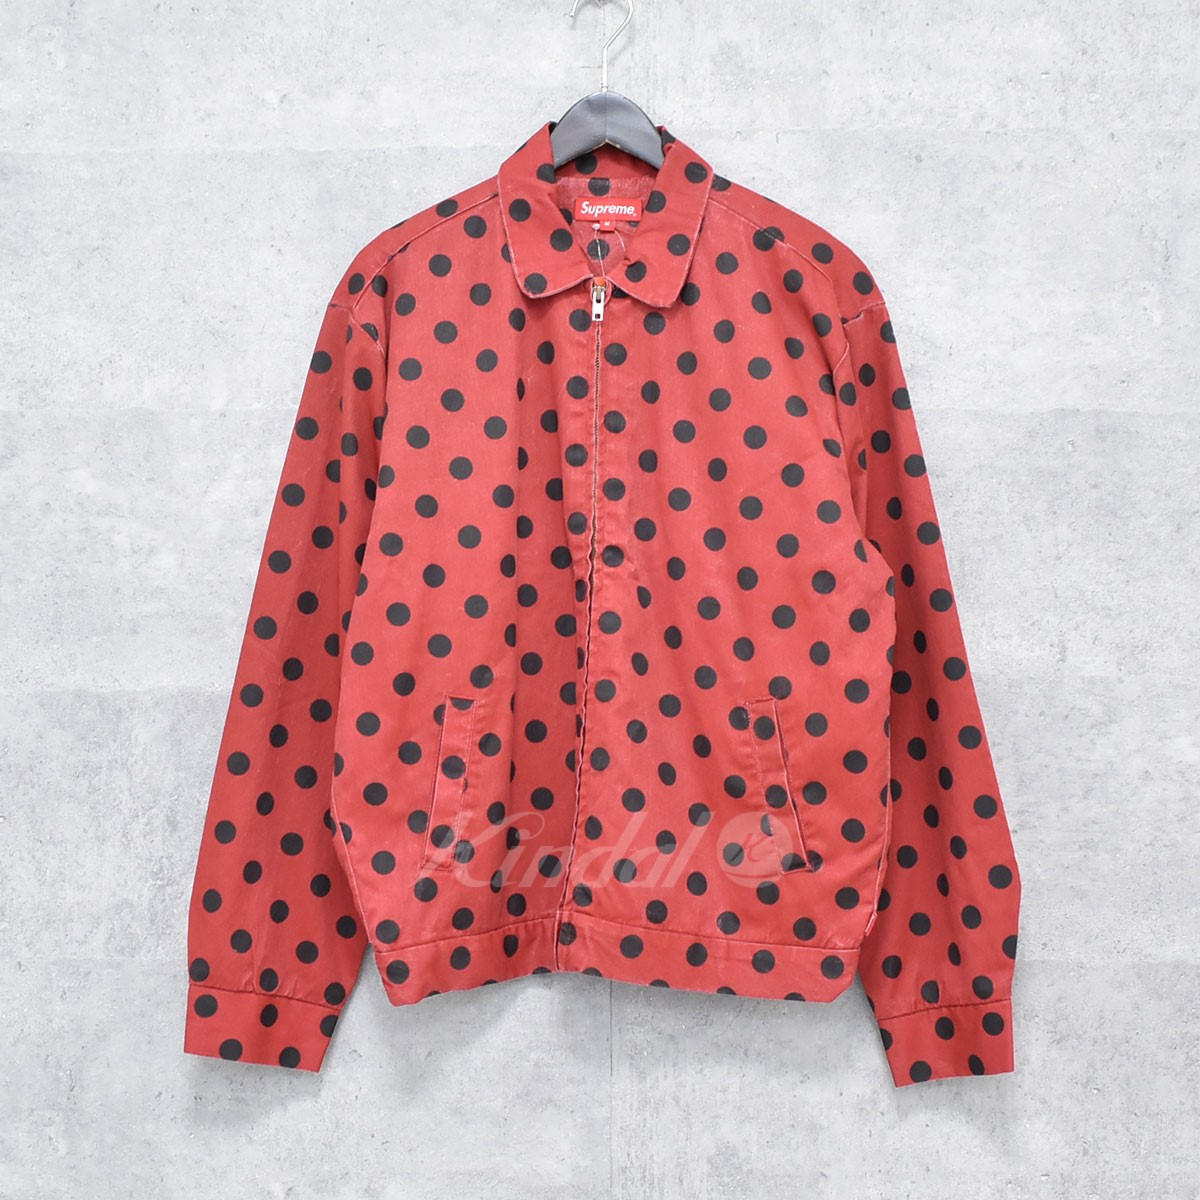 【中古】SUPREME 18SS Polka Dots Rayon Work Jacket 【送料無料】 【184543】 【KIND1550】